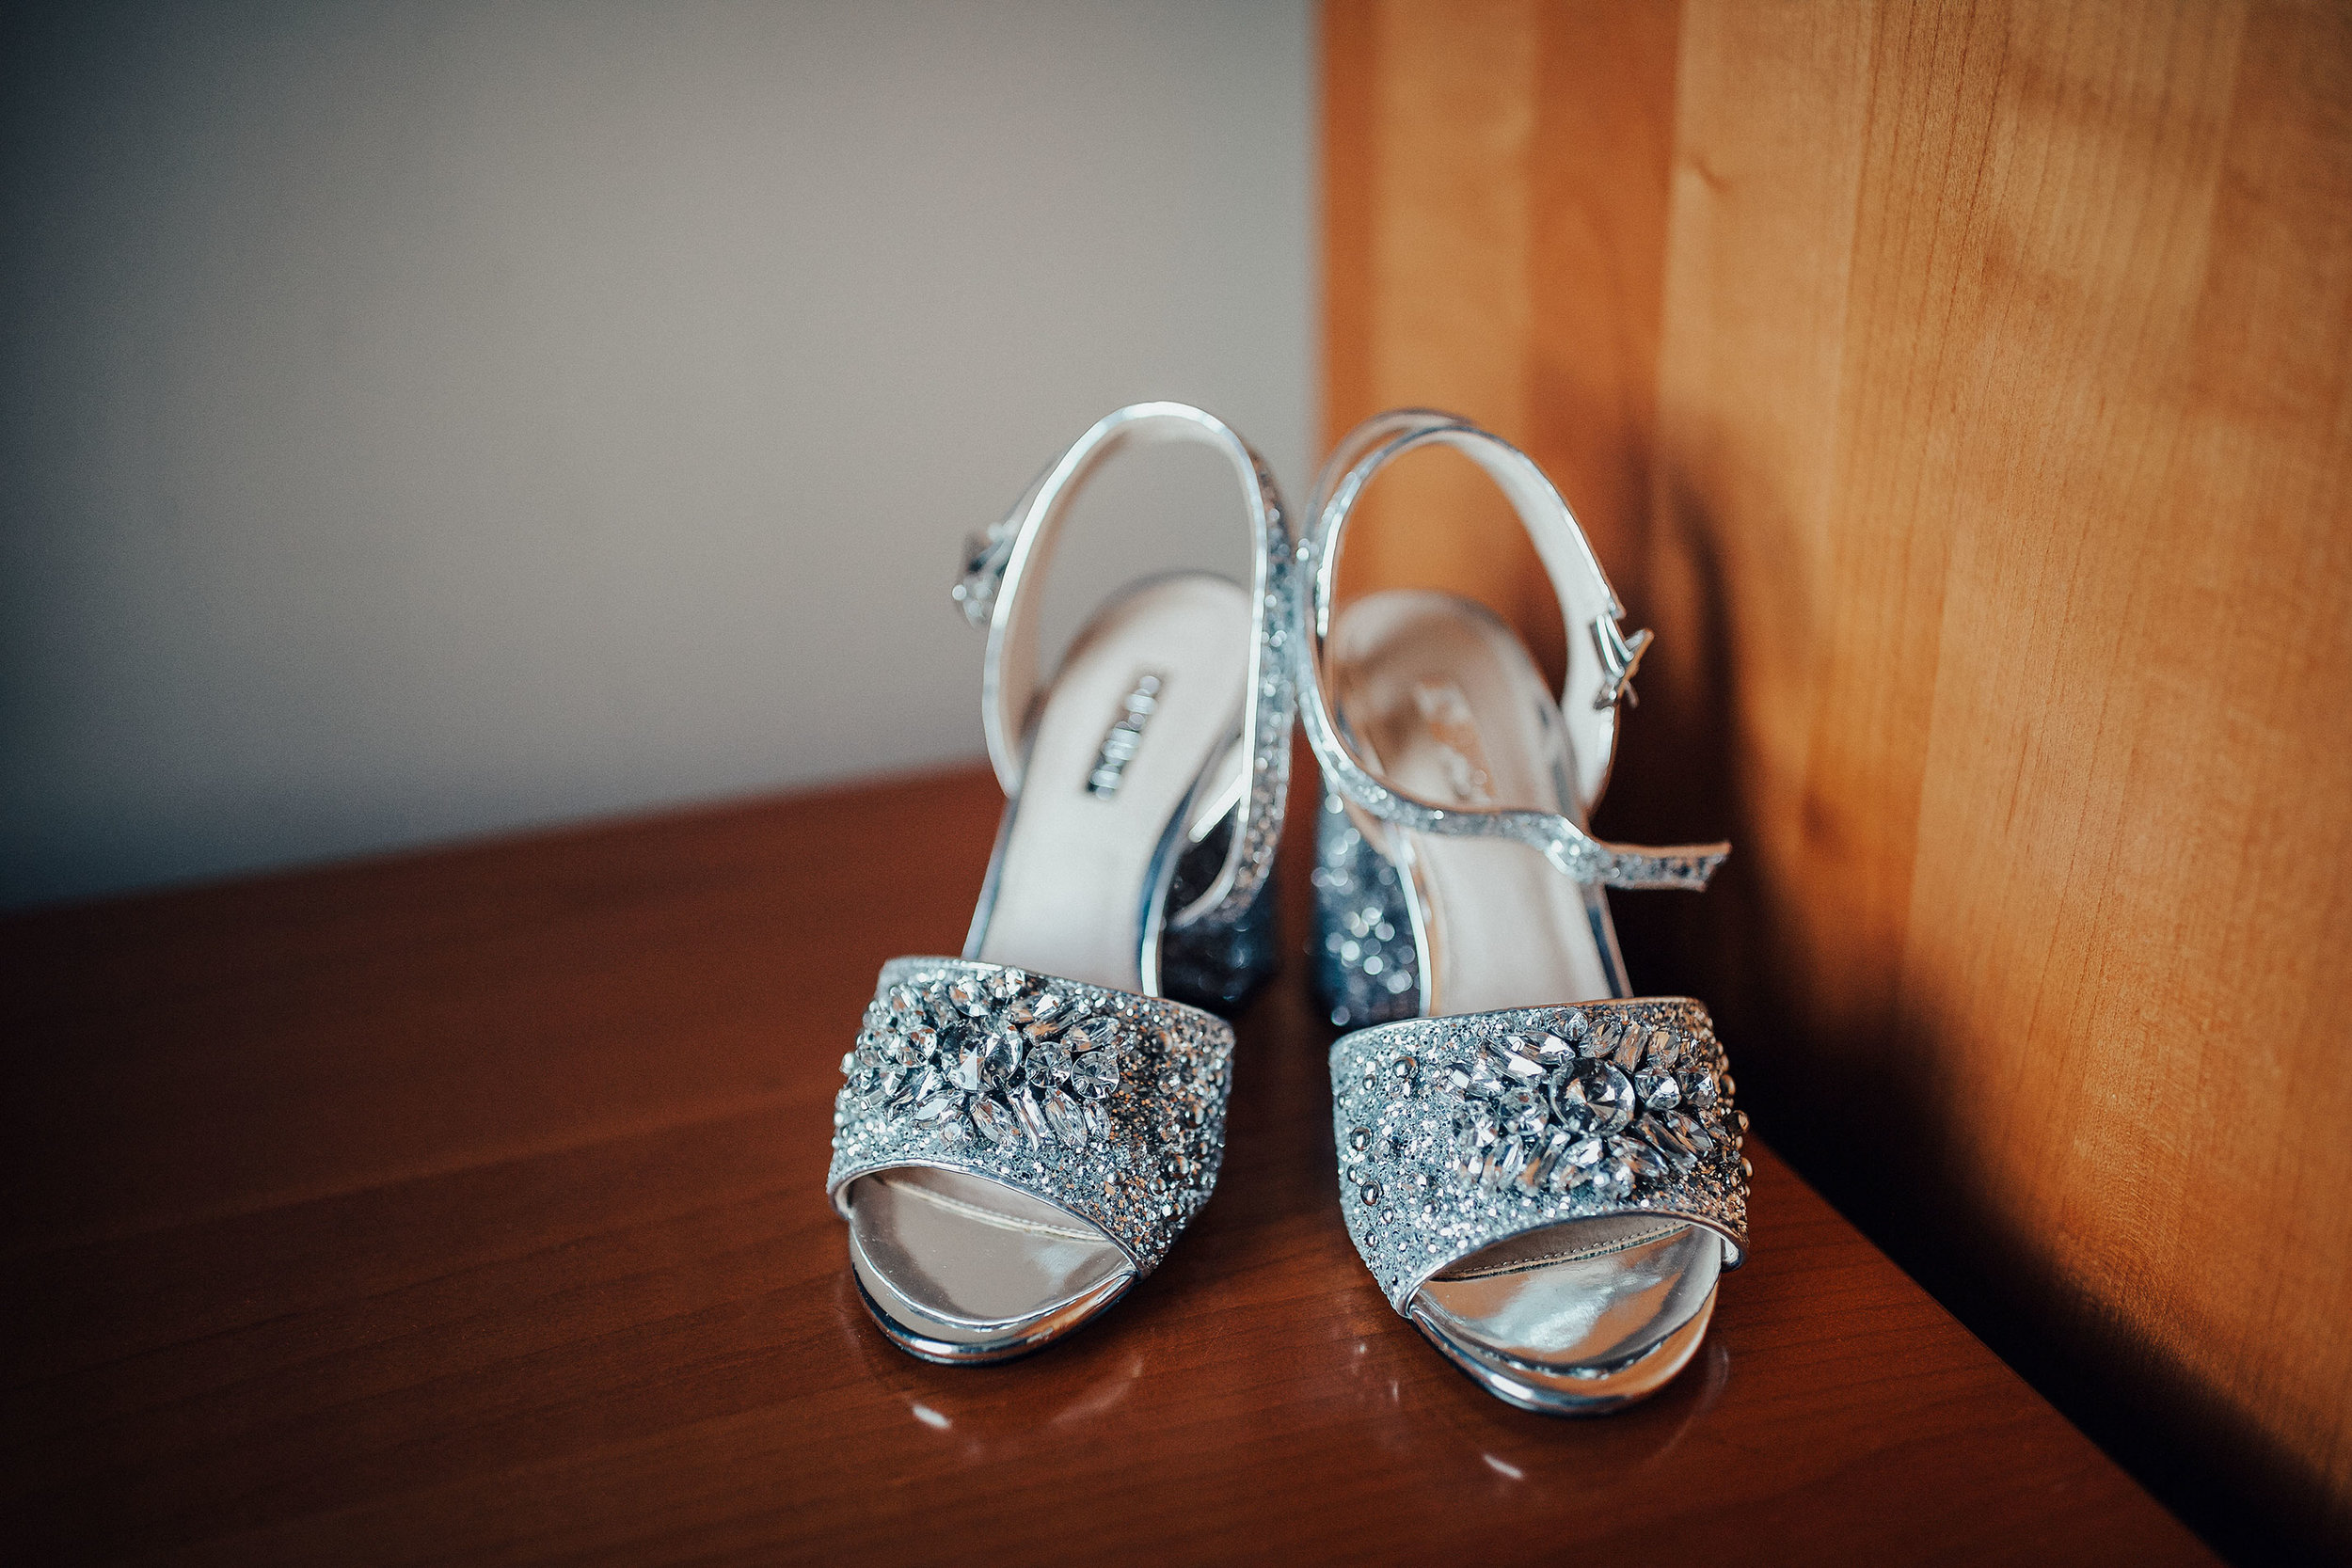 DRYGATE_WEDDING_PHOTOGRAPHER_PJ_PHILLIPS_WEDDING_PHOTOGRAPHY_12.jpg